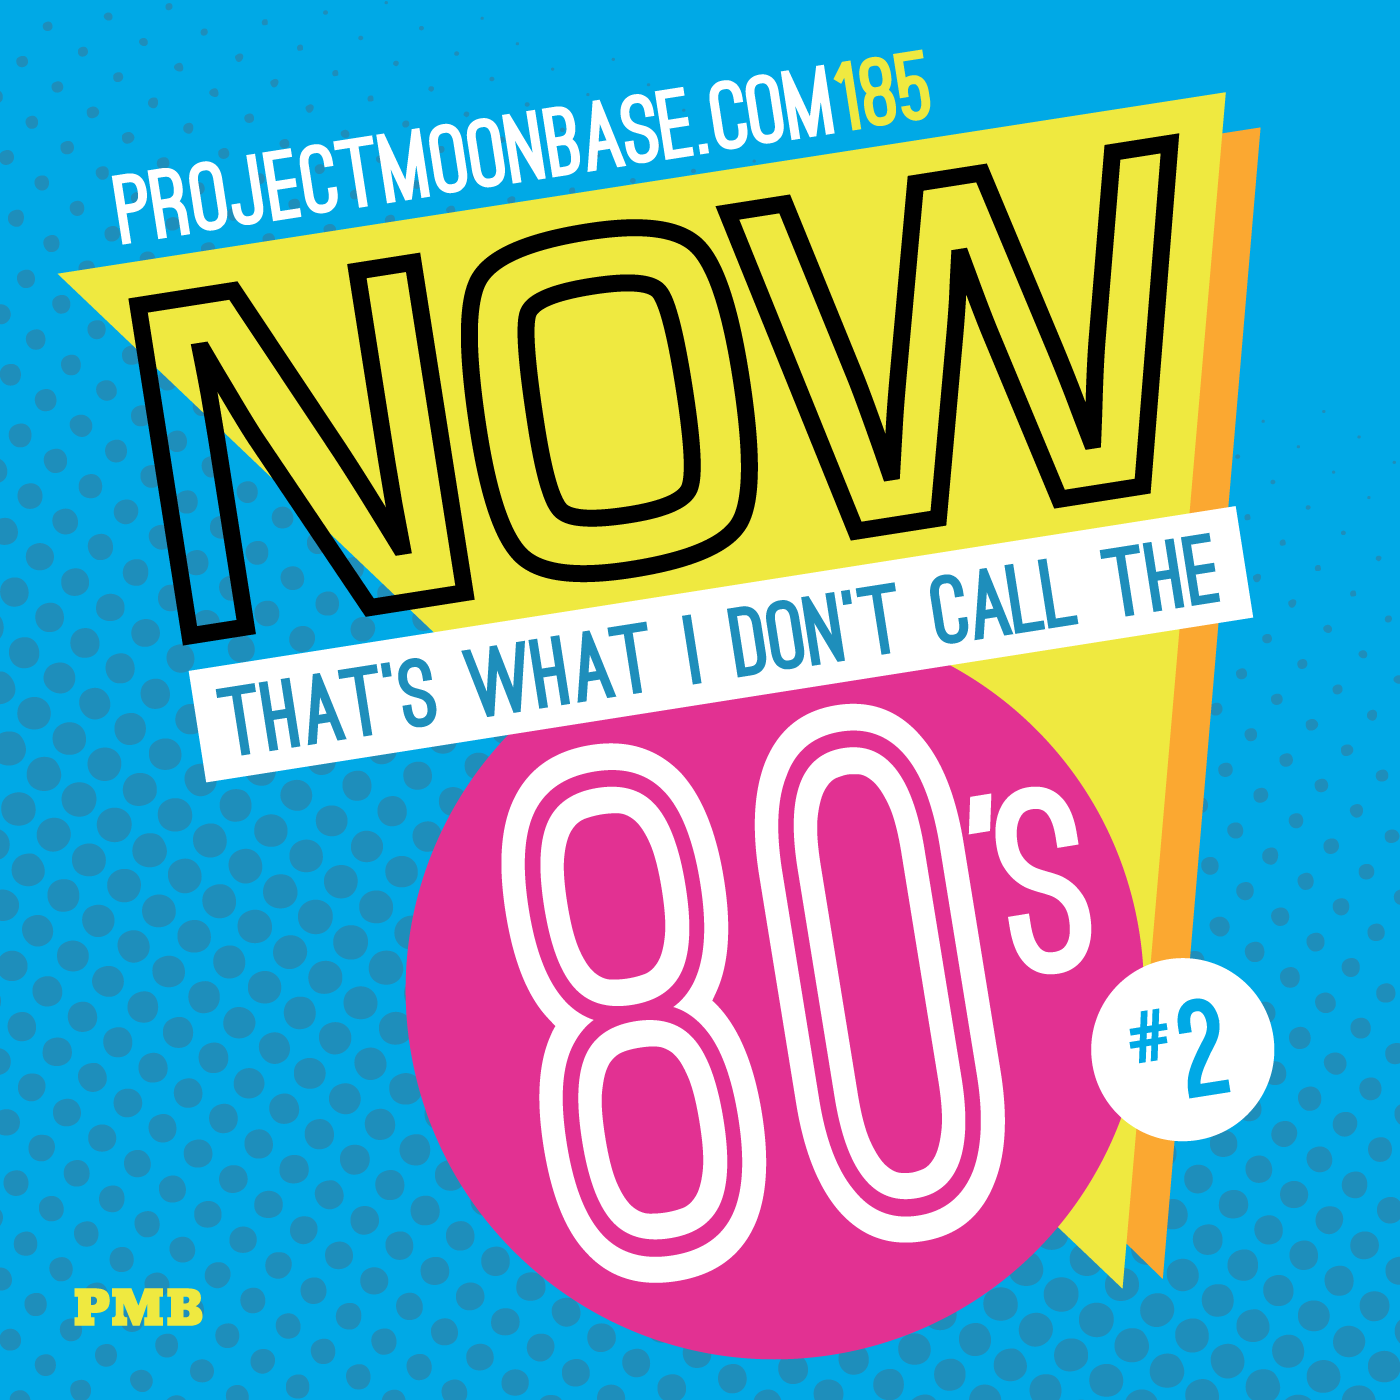 PMB185 Now That's What I Don't Call the 80s 2